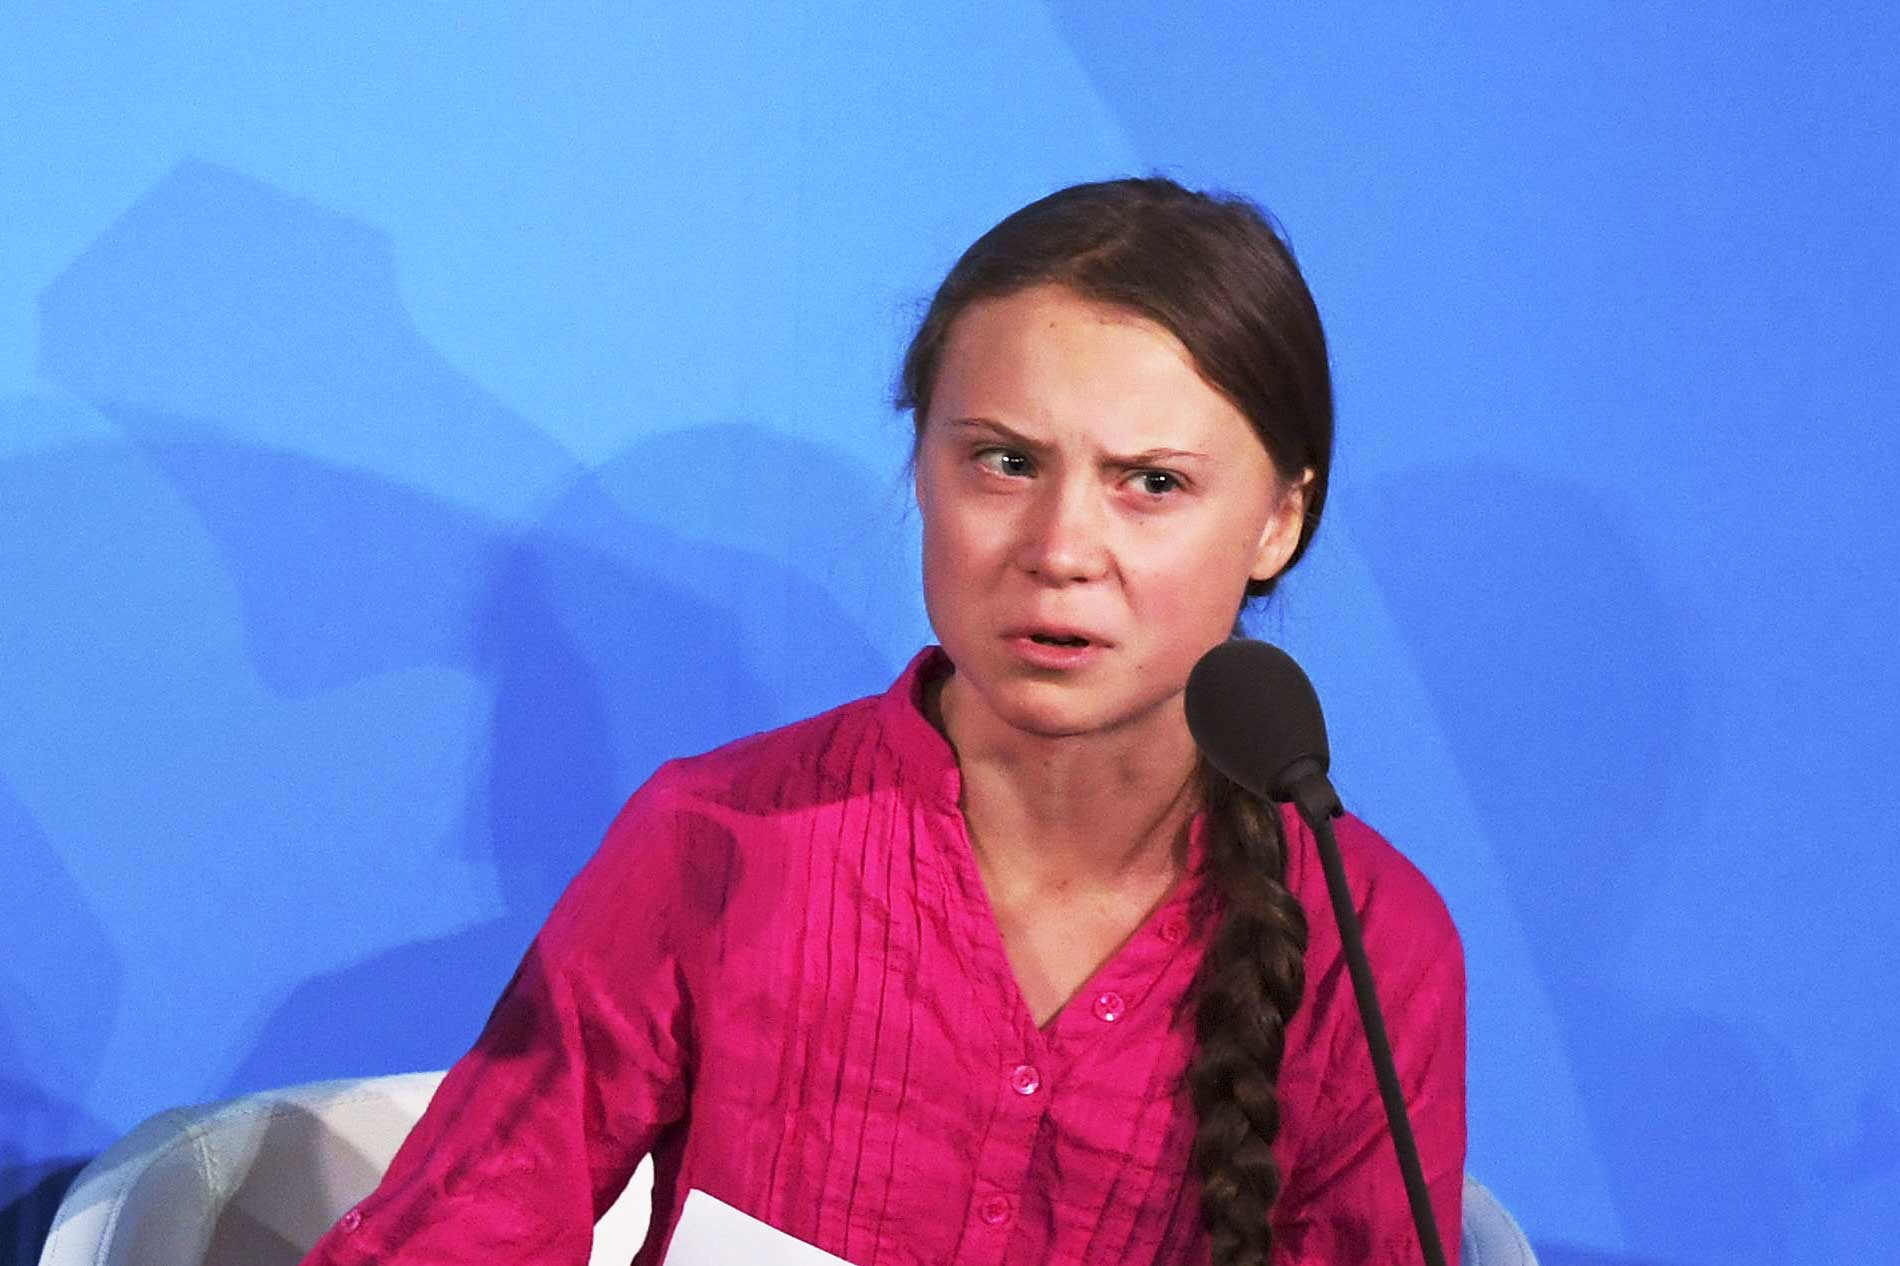 Swedish climate activist Greta Thunberg scowls from behind a microphone at the UN Climate Action Summit.